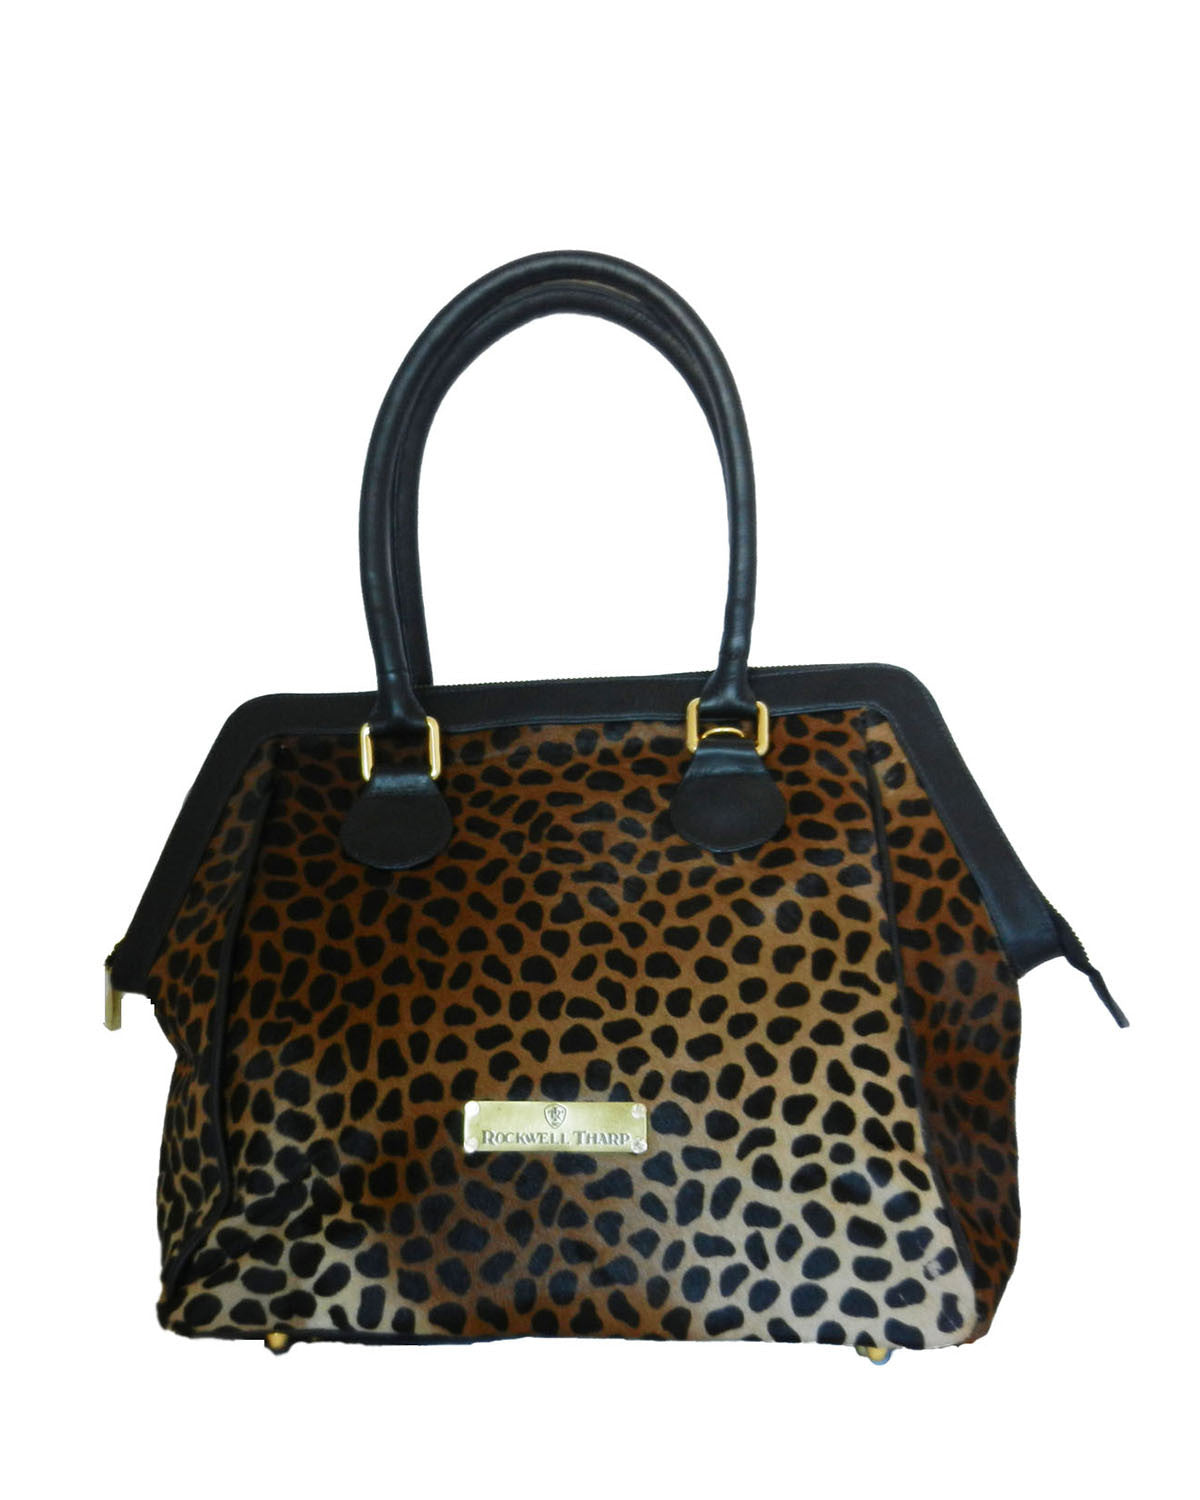 Safari Cheetah Calf Hair w/Black Trim